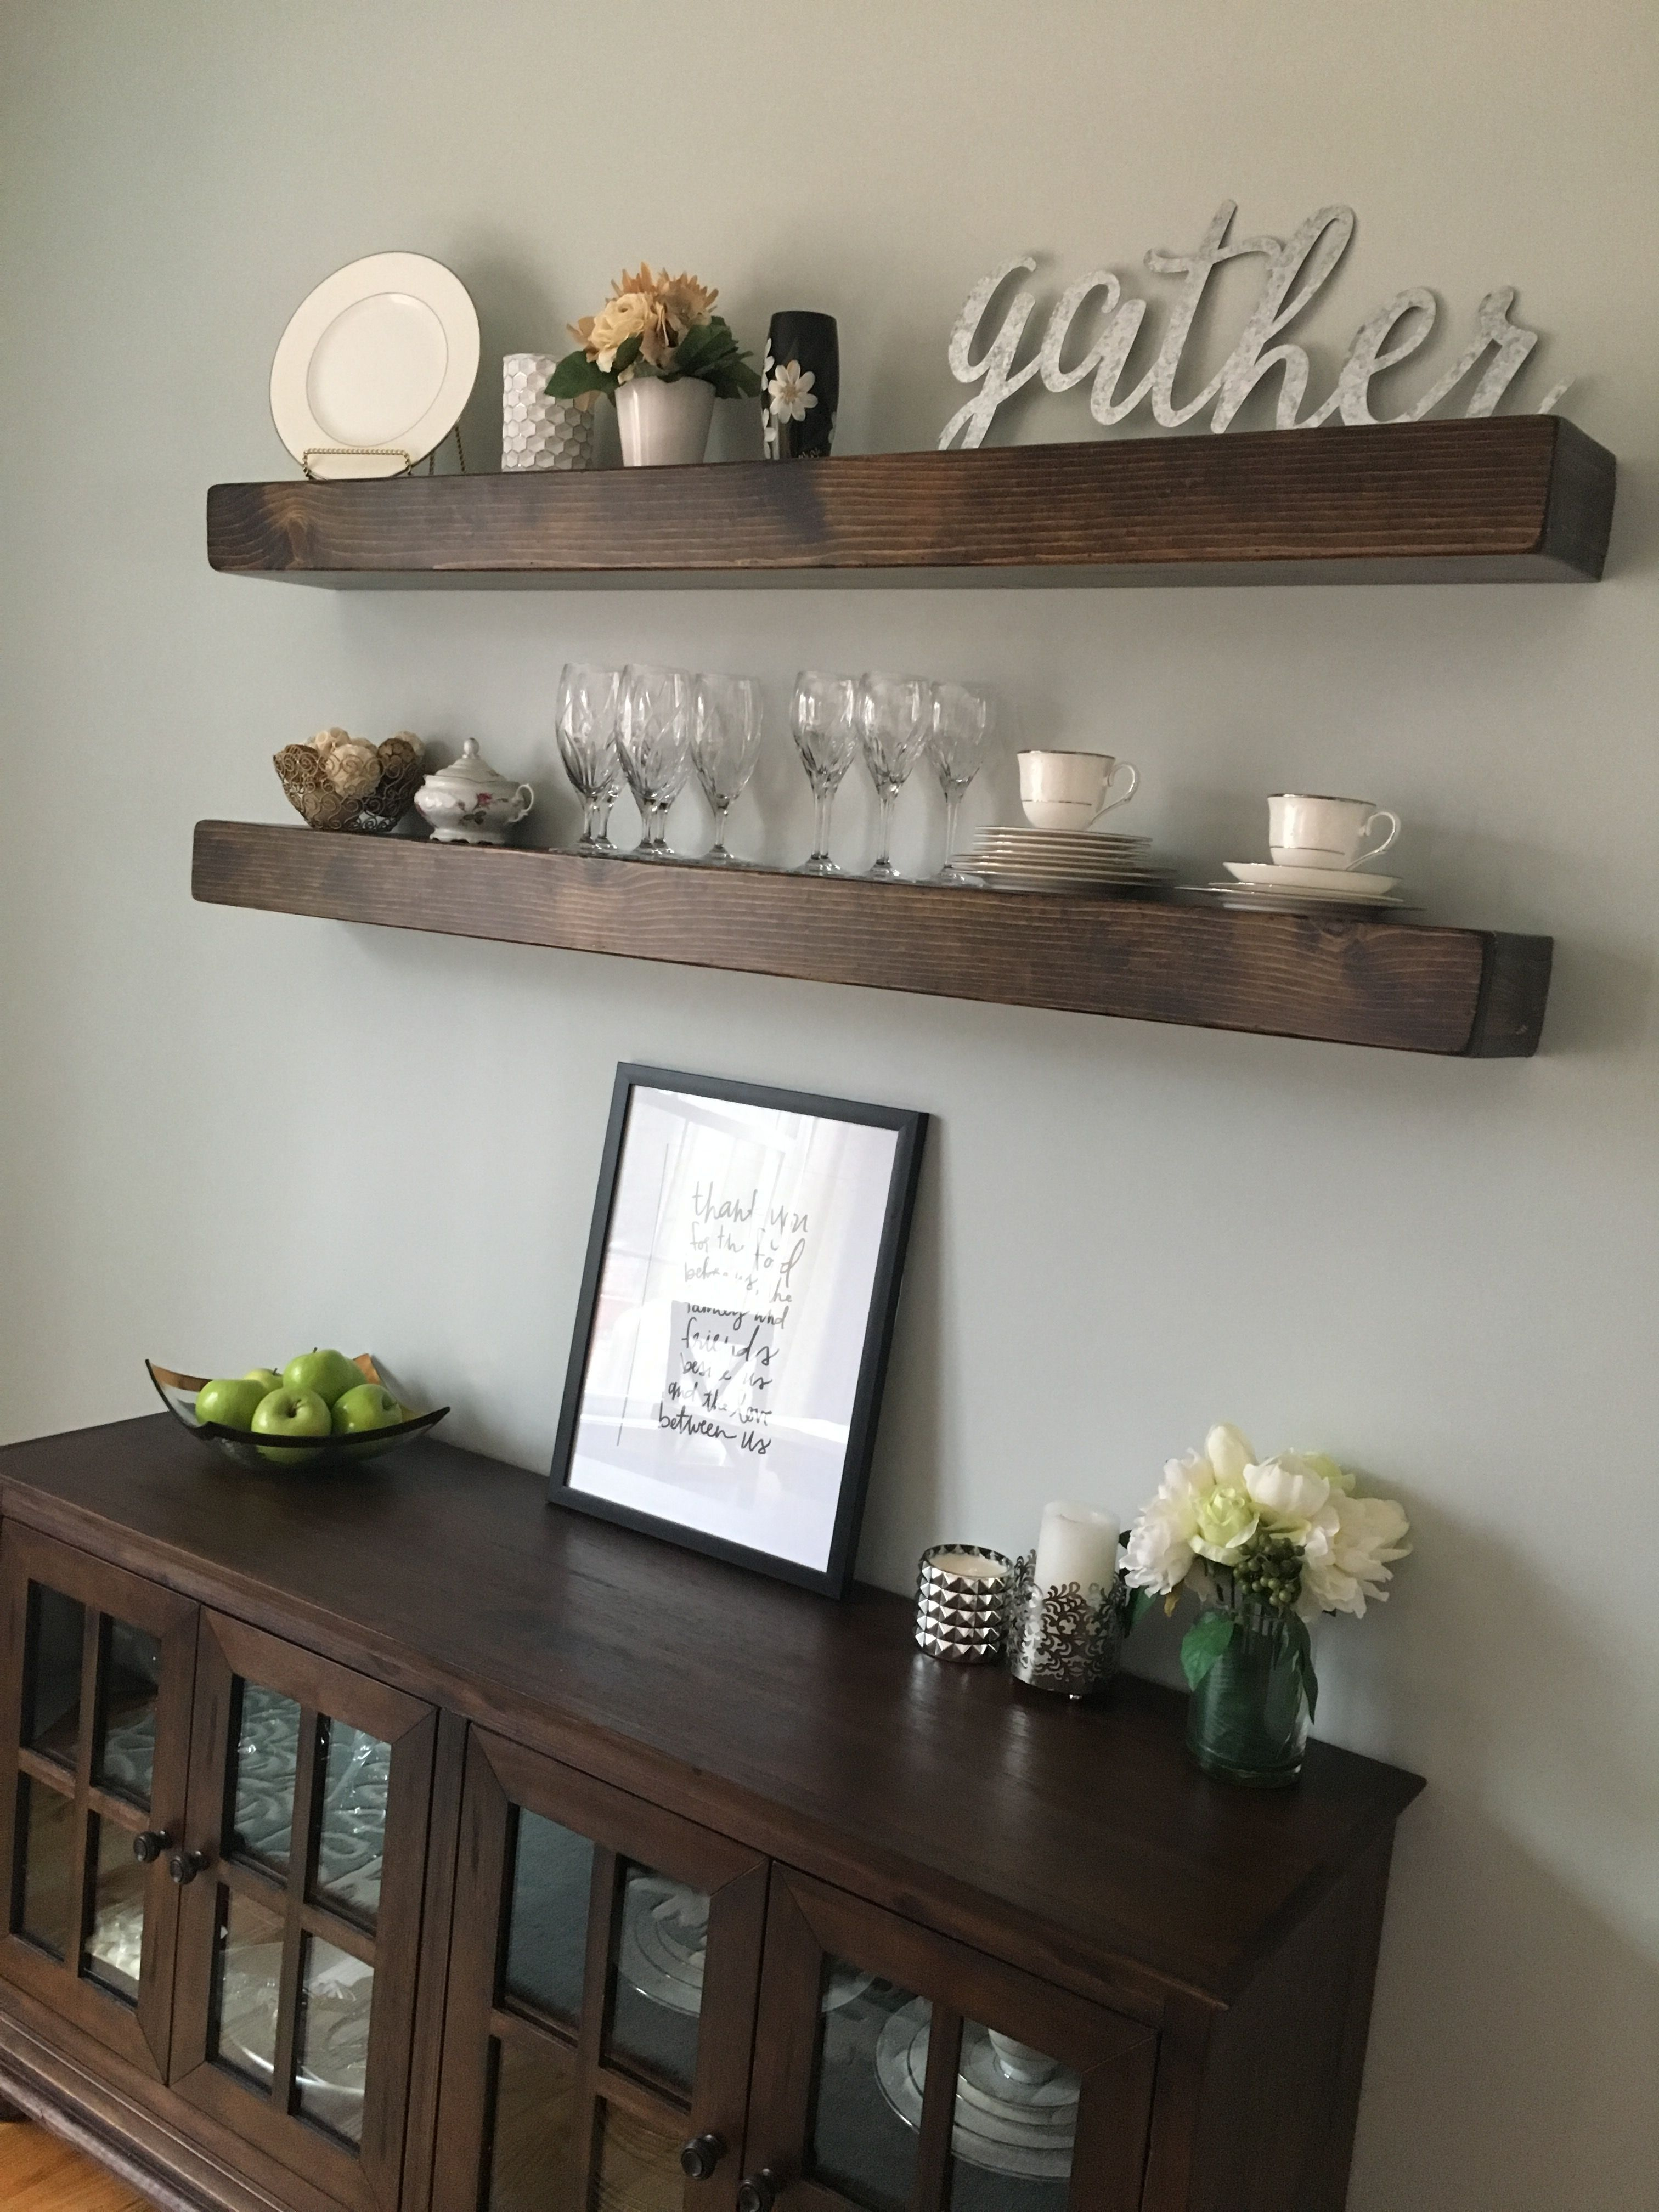 9 Exquisite Ideas Farmhouse Floating Shelves Above Couch Wooden Floating Shelf Bed In 2020 Dining Room Wall Decor Dining Room Floating Shelves Small Dining Room Decor